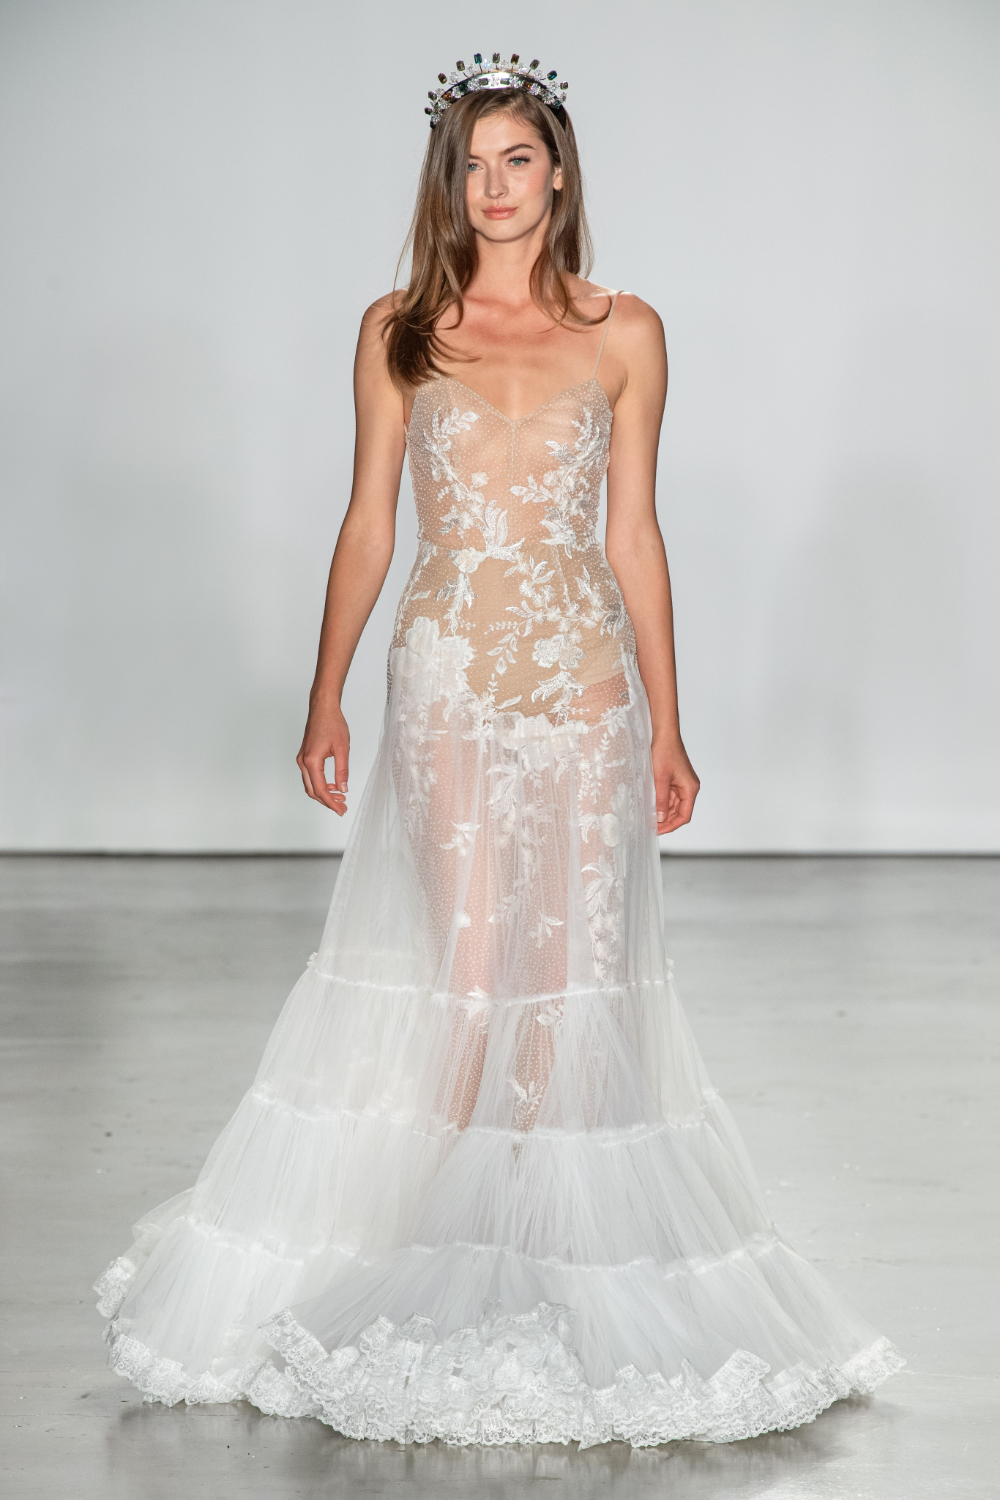 Inbal Dror Bridal Fall 2020 Fashion Show Inbal dror